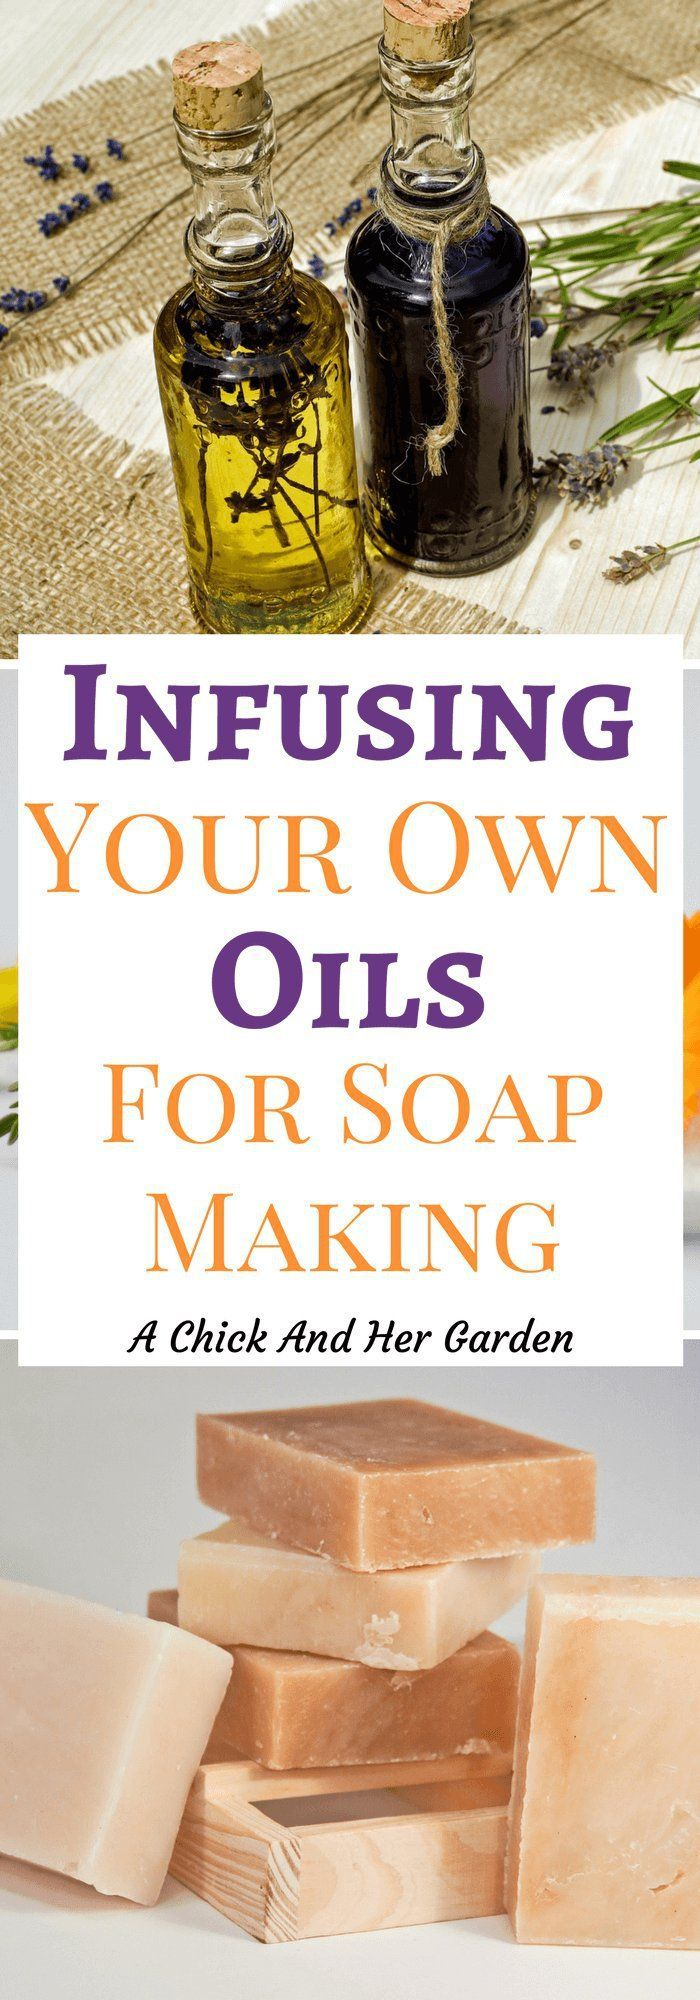 How can you add the benefits of herbs to your soaps? By infusing your own oils! See how easy it is here! #naturalskincare #soapmaking #healthandbeauty #soap #selfsufficient #DIY